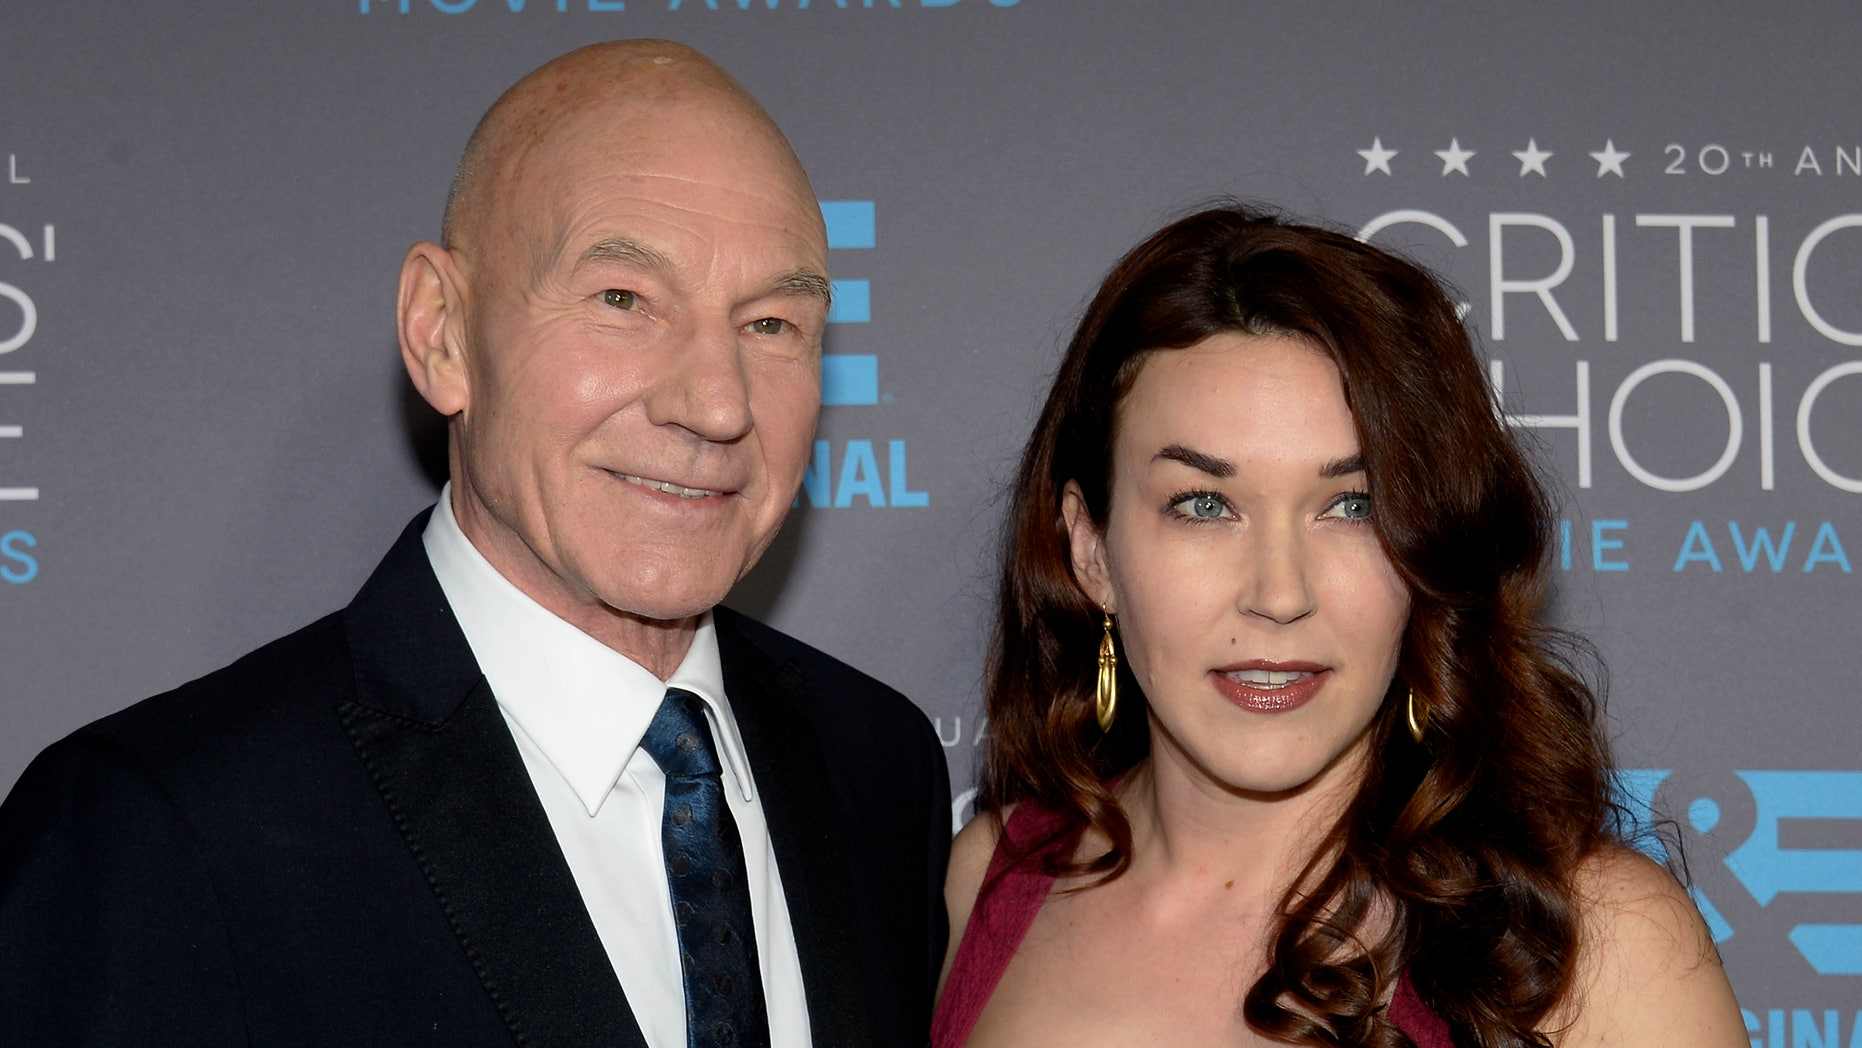 Jan 15, 2015. Patrick Stewart and his wife Sunny Ozell arrive at the 20th Annual Critics Choice Movie Awards in Los Angeles, California.